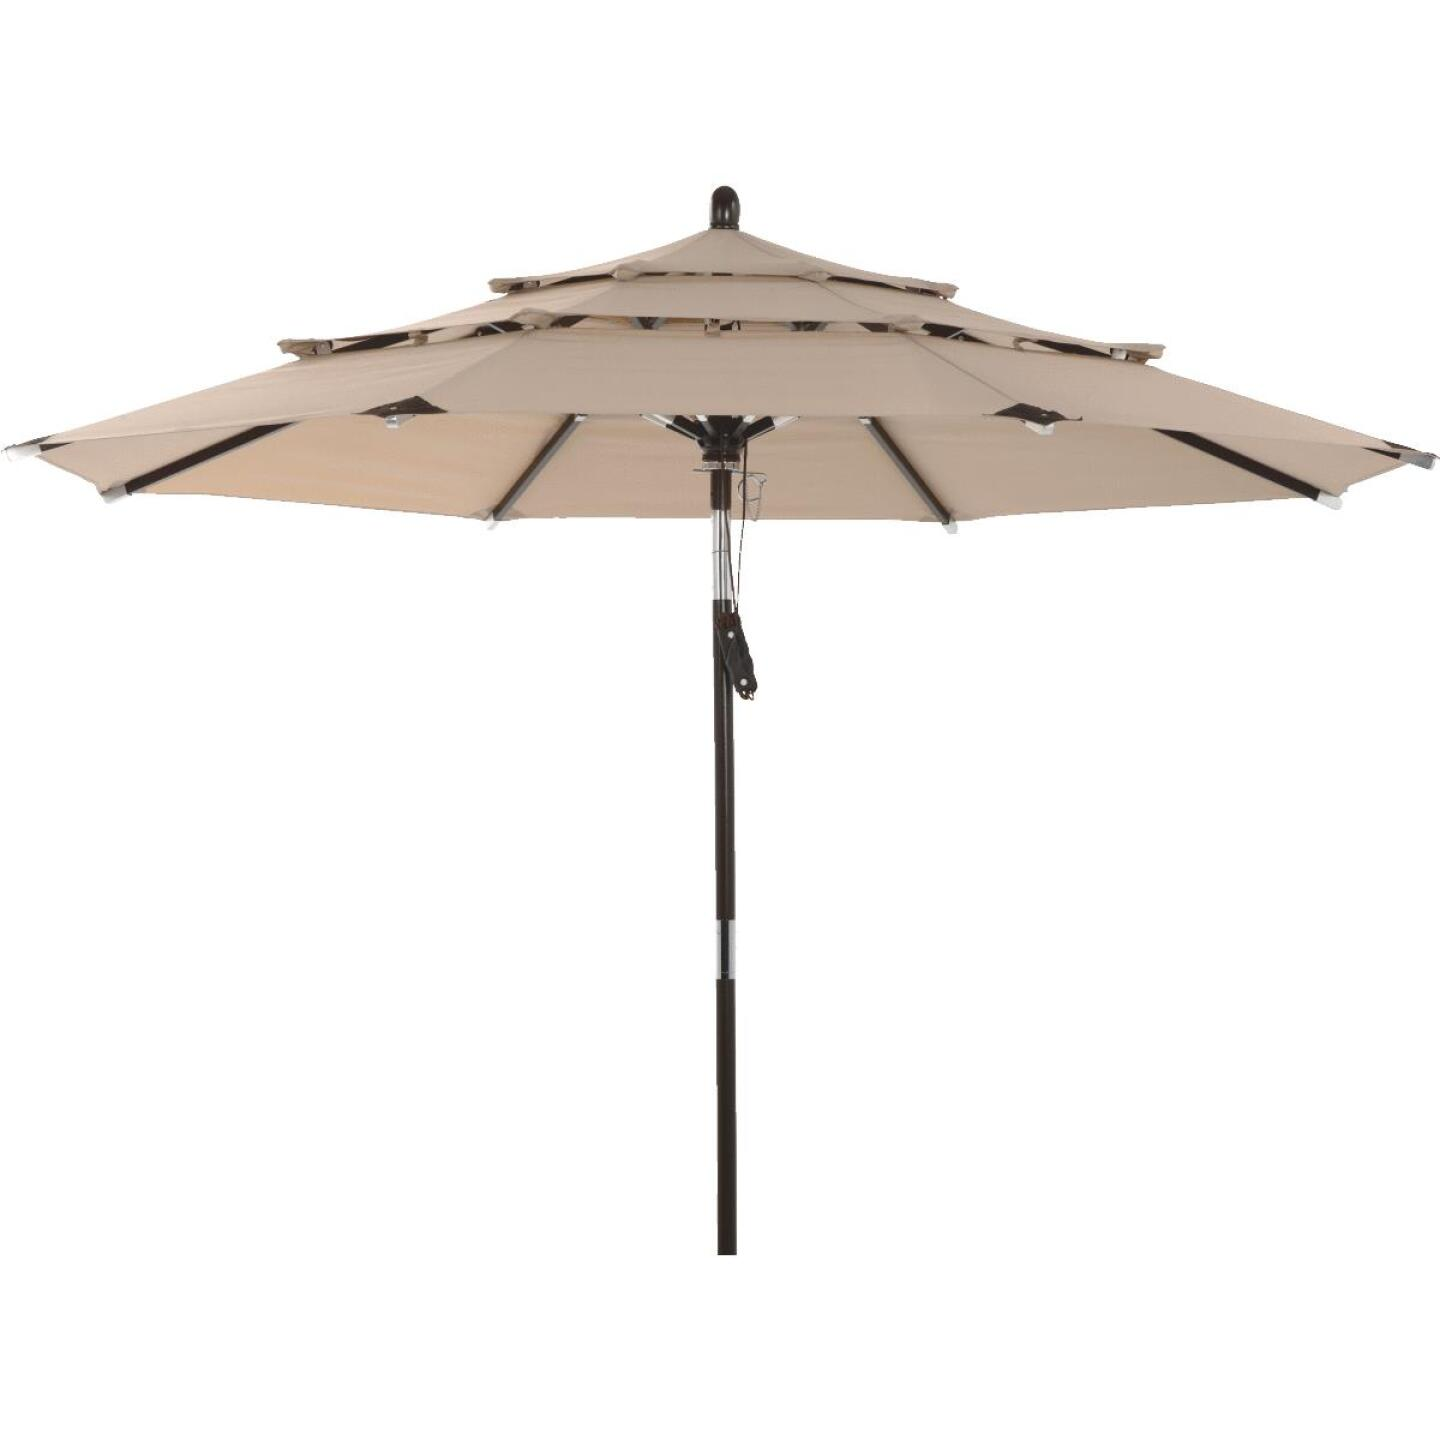 Outdoor Expressions 9 Ft. 3-Tier Tilt/Pulley Tan Patio Umbrella Image 1